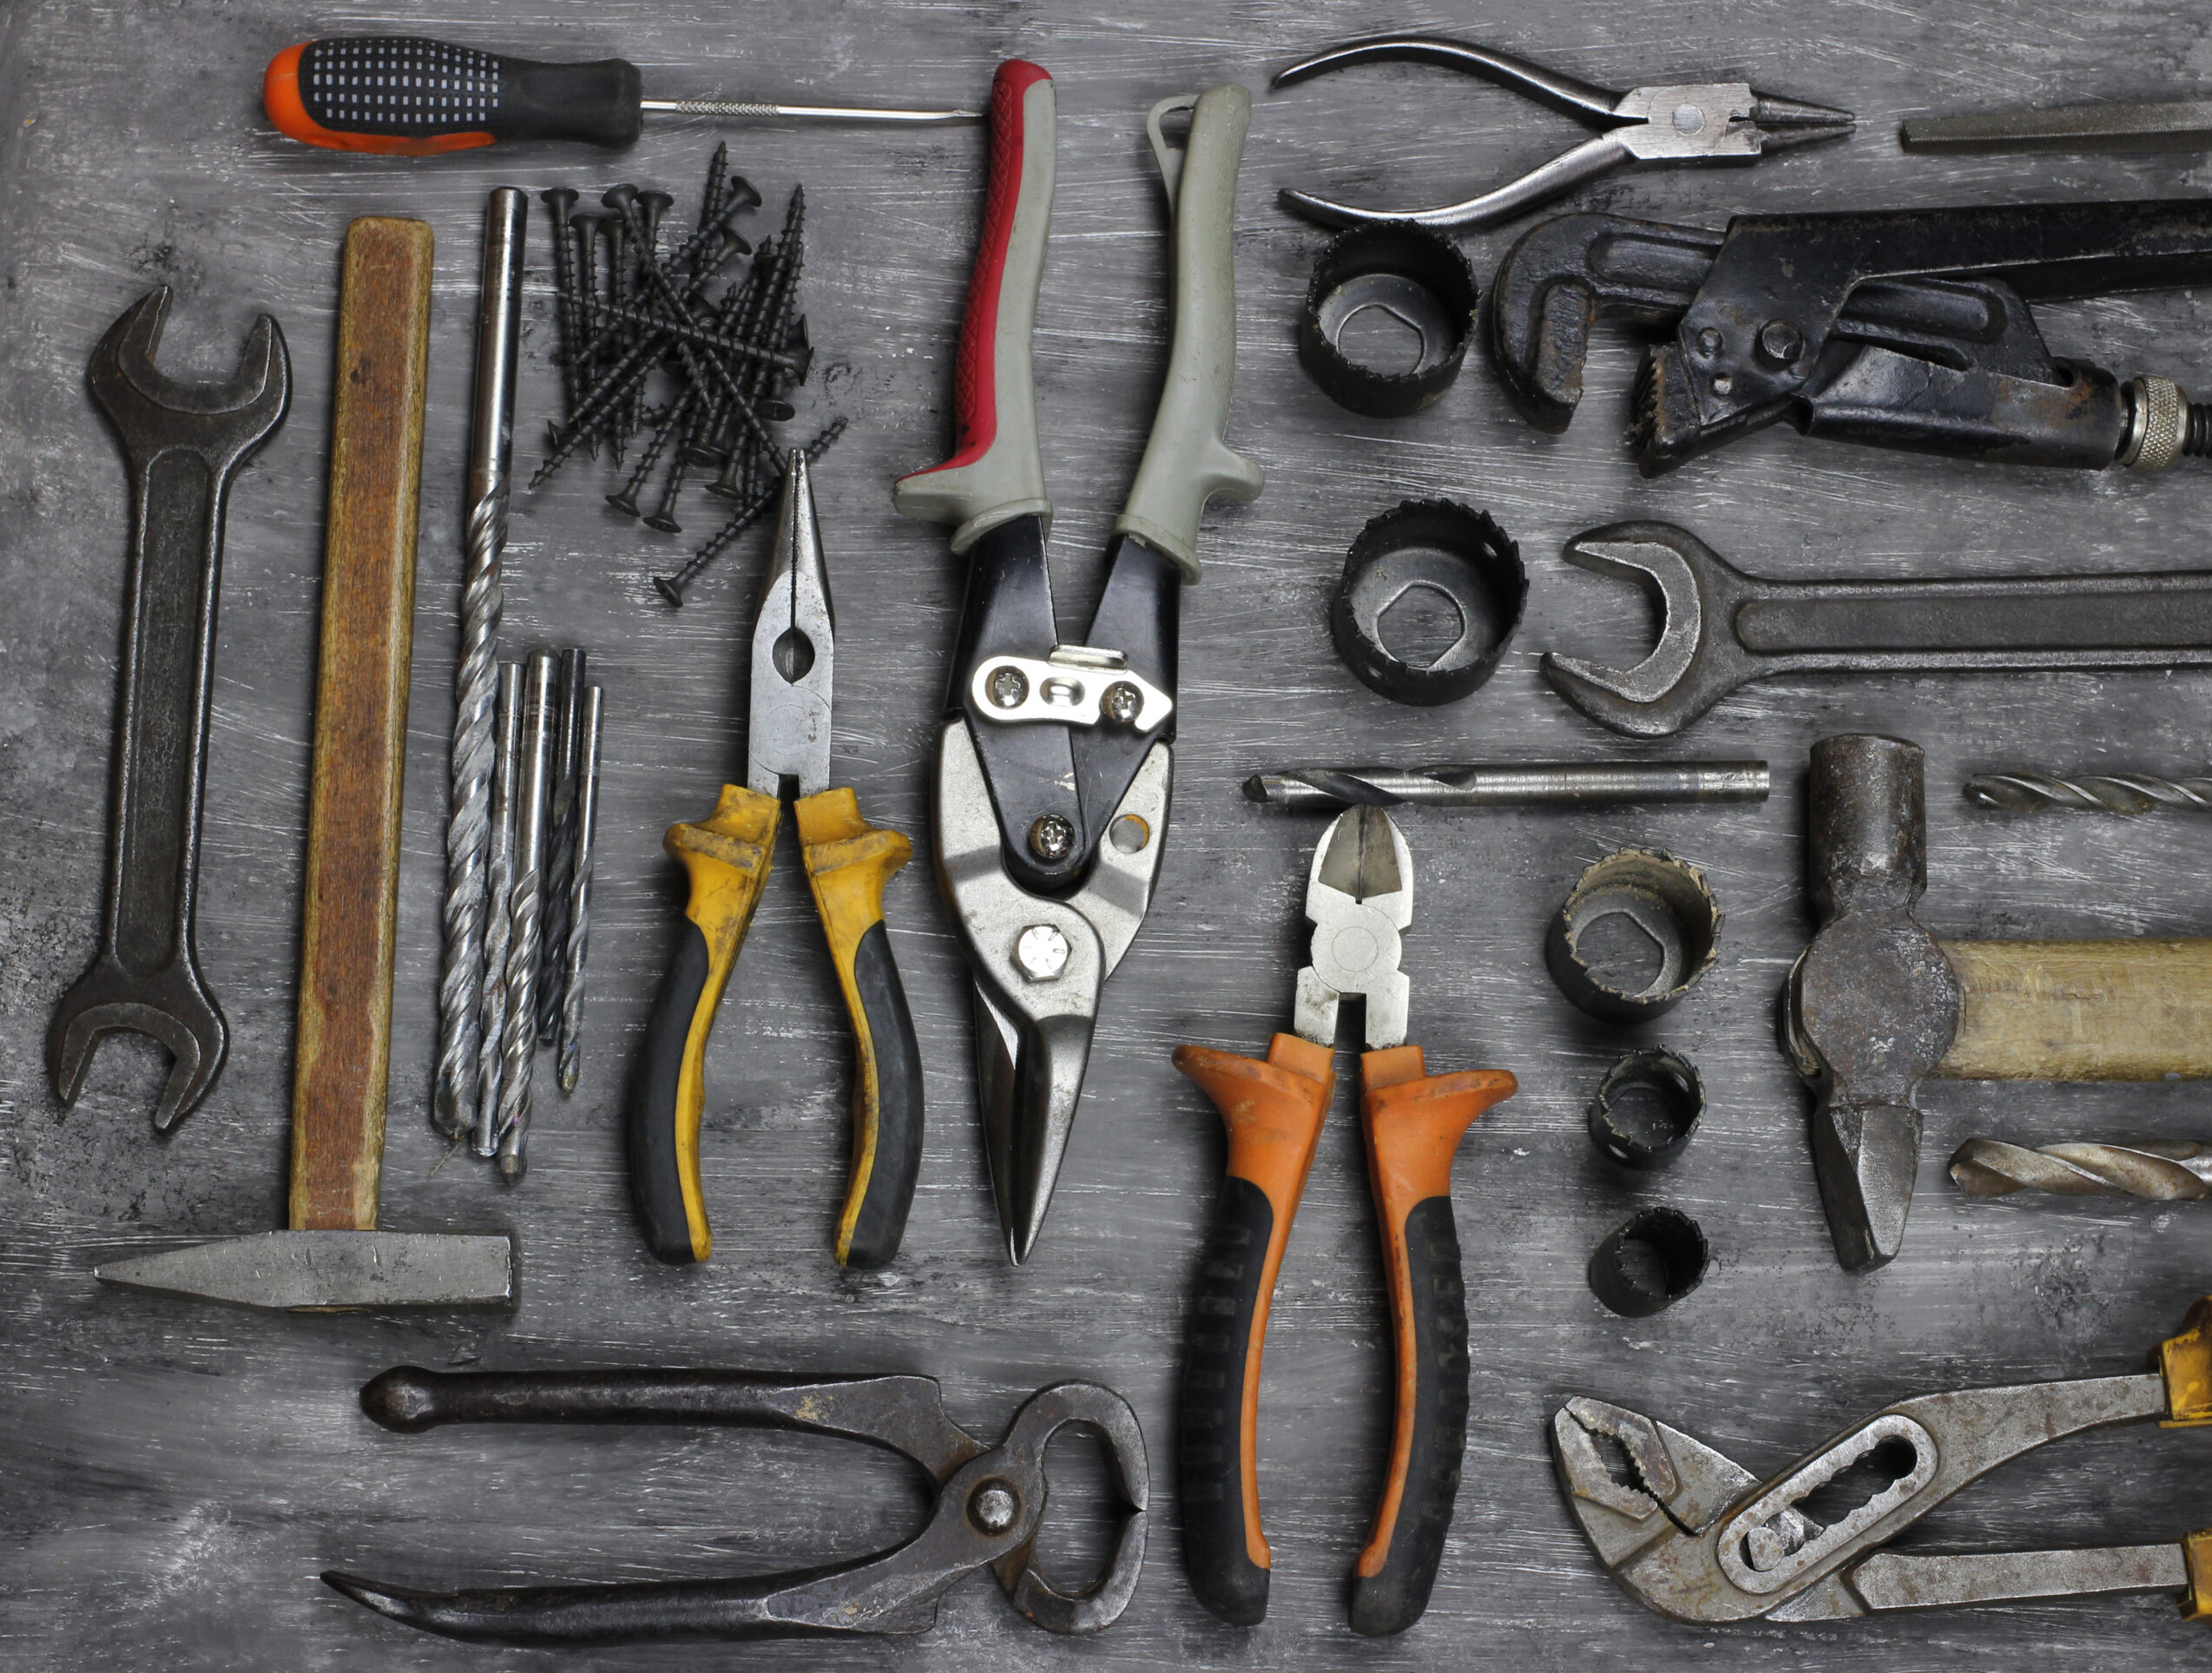 repairing implements for decorating and building renovation set in the wooden background. Top view